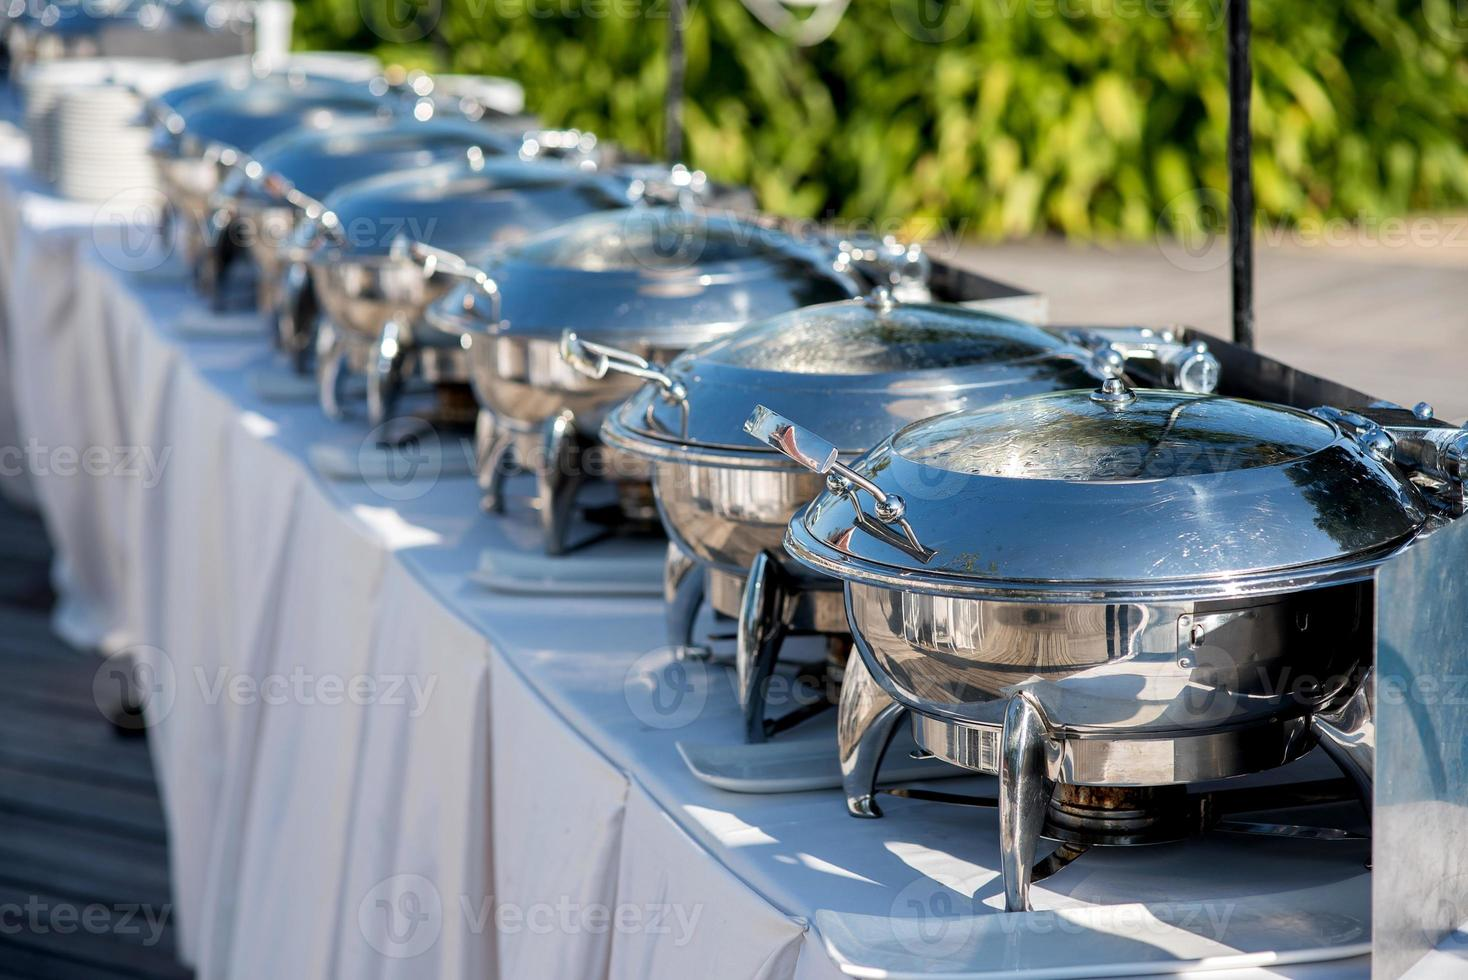 Buffet Table with Row of Food Service Steam Pans photo